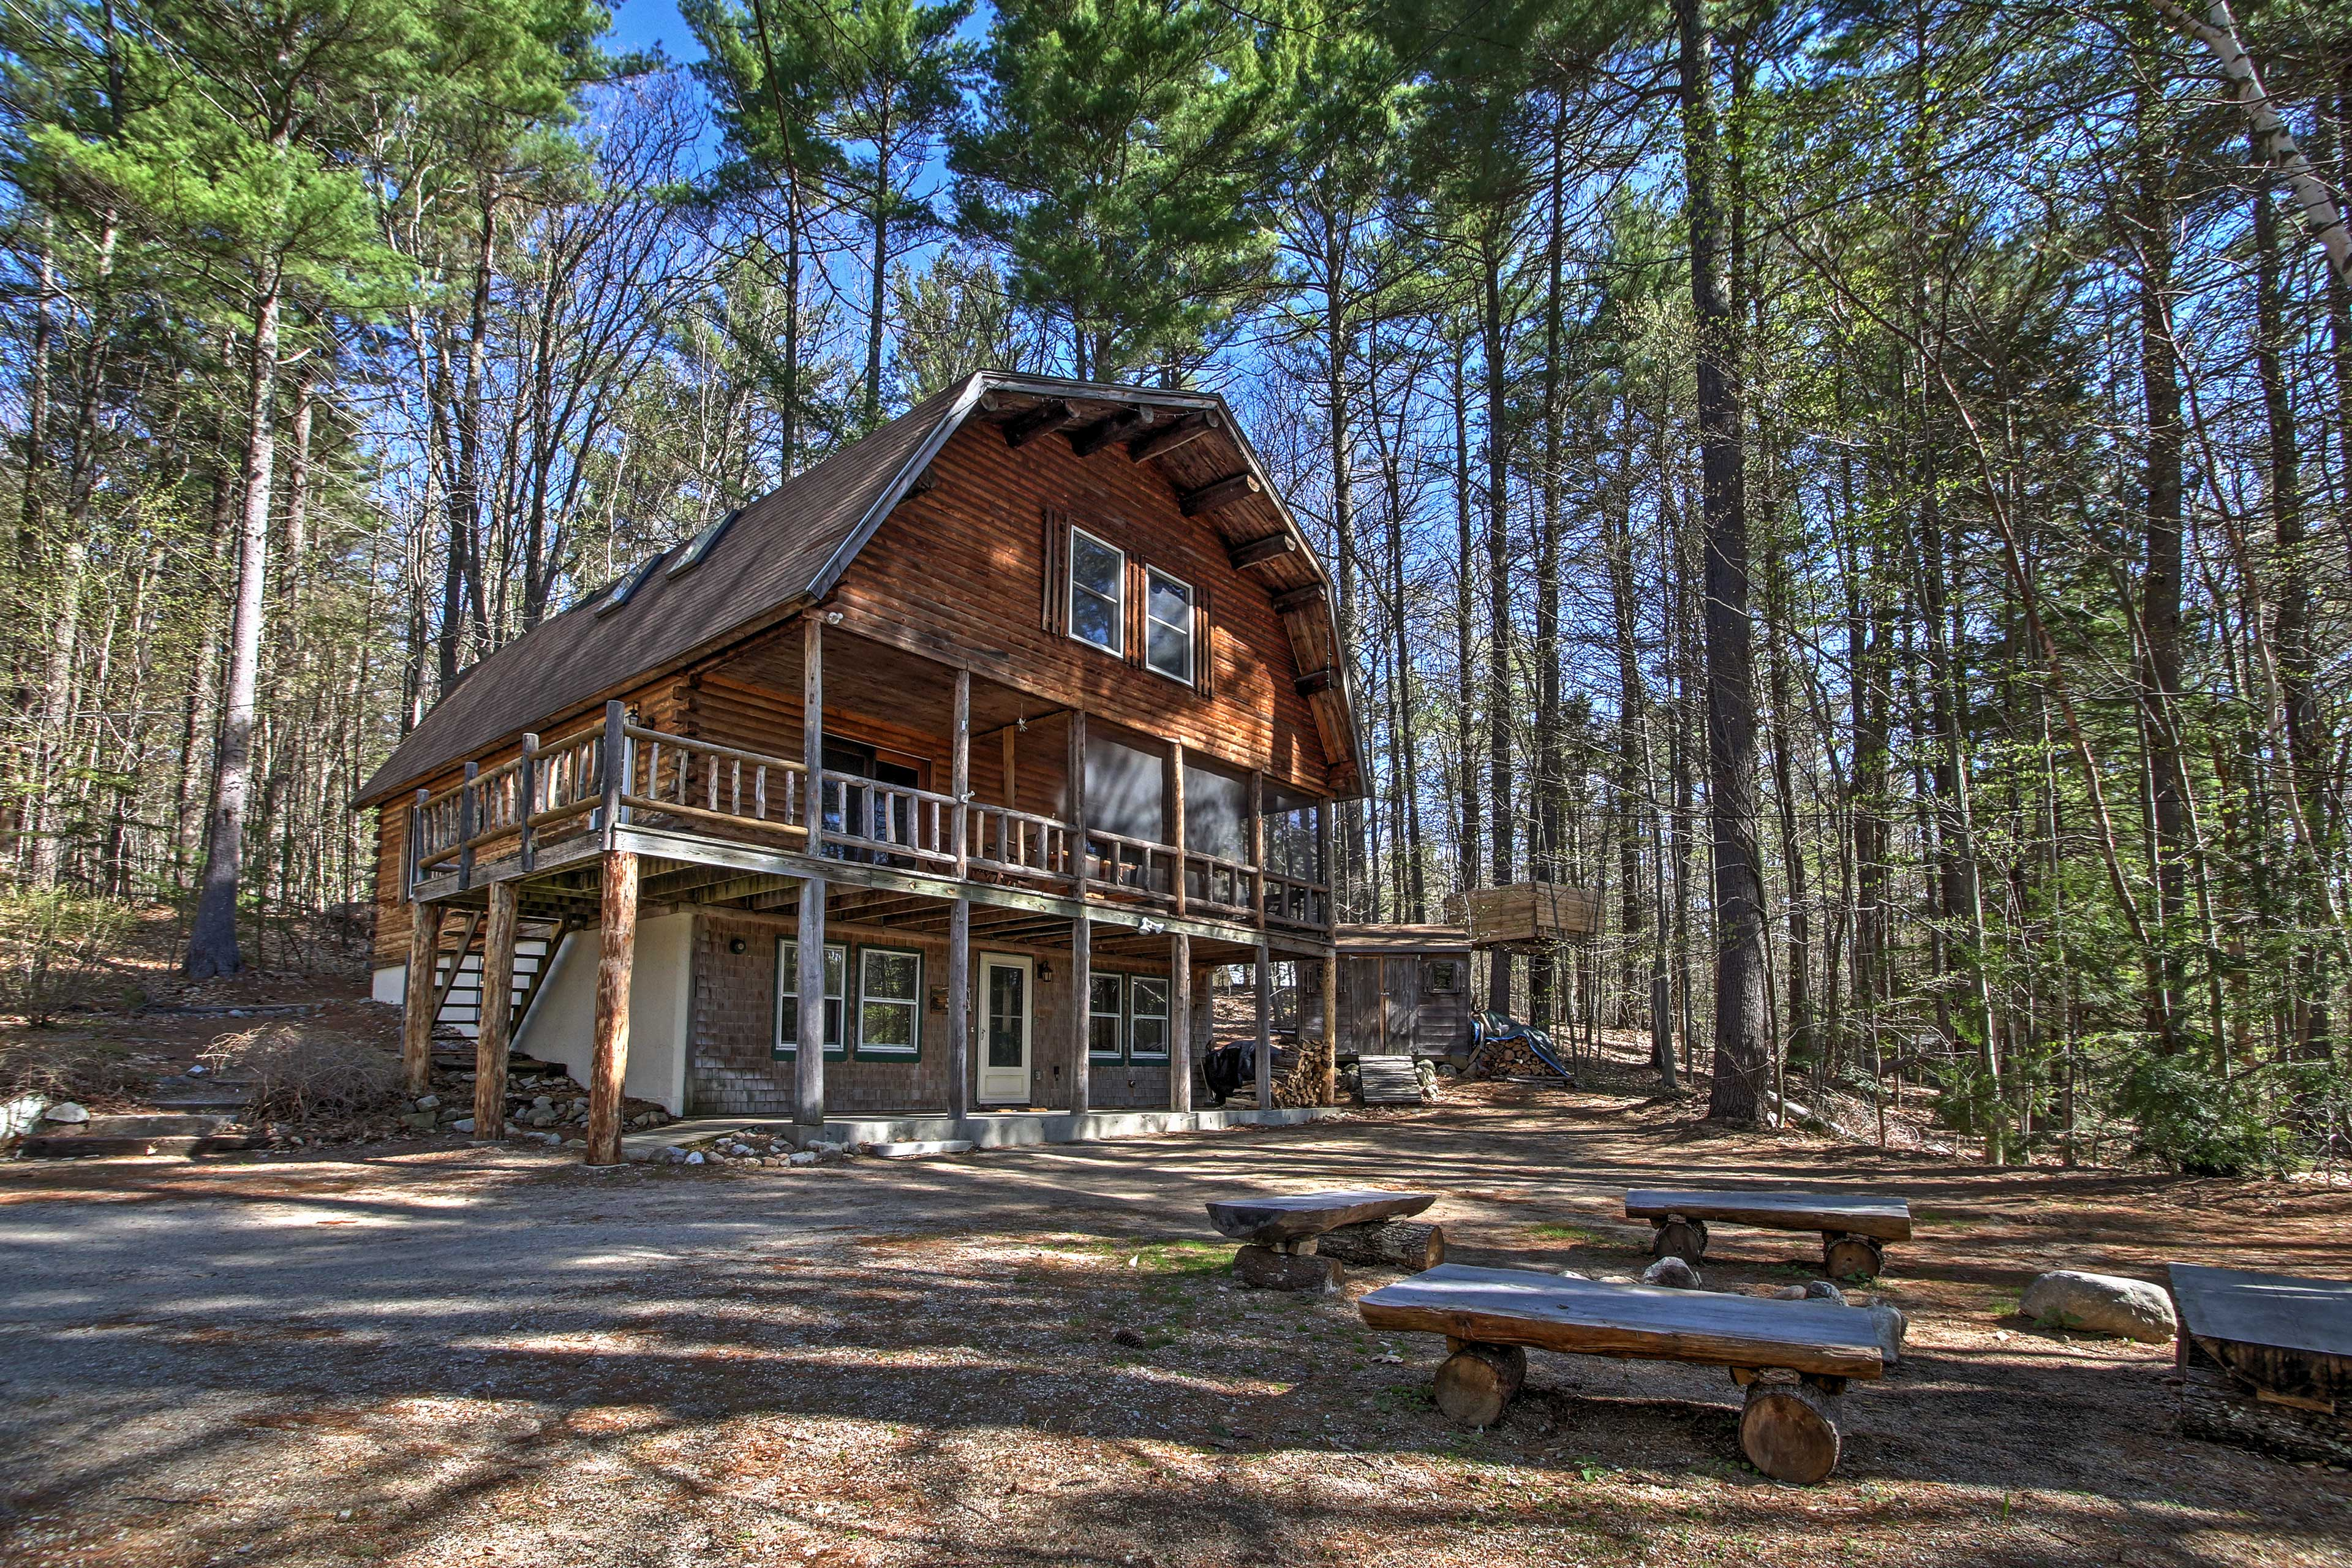 Enjoy serenity at the 'Treehouse' cabin!